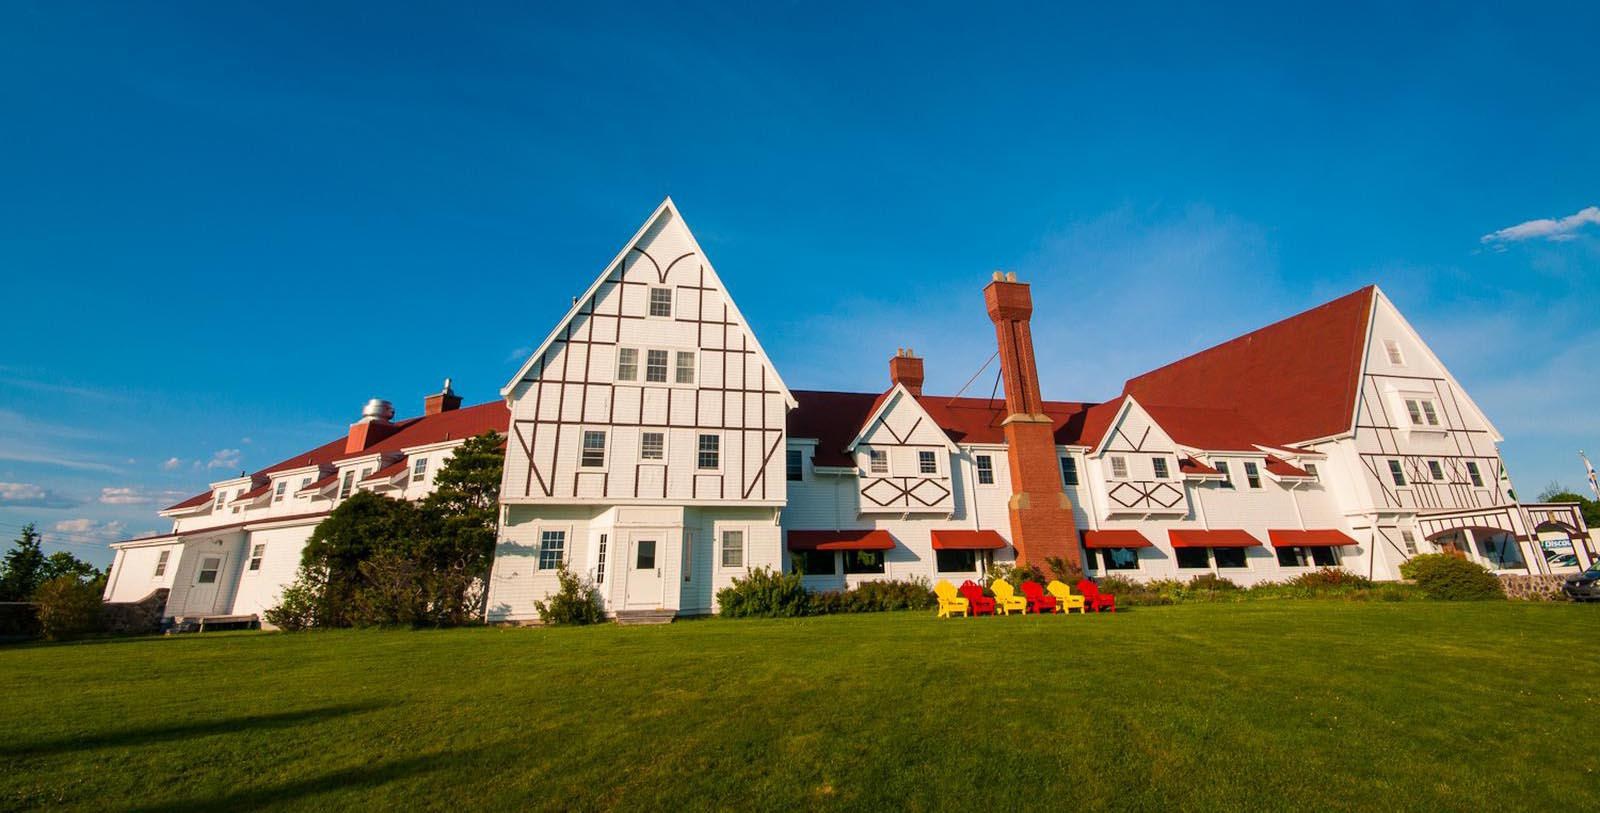 Image of Hotel Exterior Keltic Lodge Resort and Spa, 1940, Member of Historic Hotels Worldwide, in Ingonish Beach, Nova Scotia, Special Offers, Discounted Rates, Families, Romantic Escape, Honeymoons, Anniversaries, Reunions